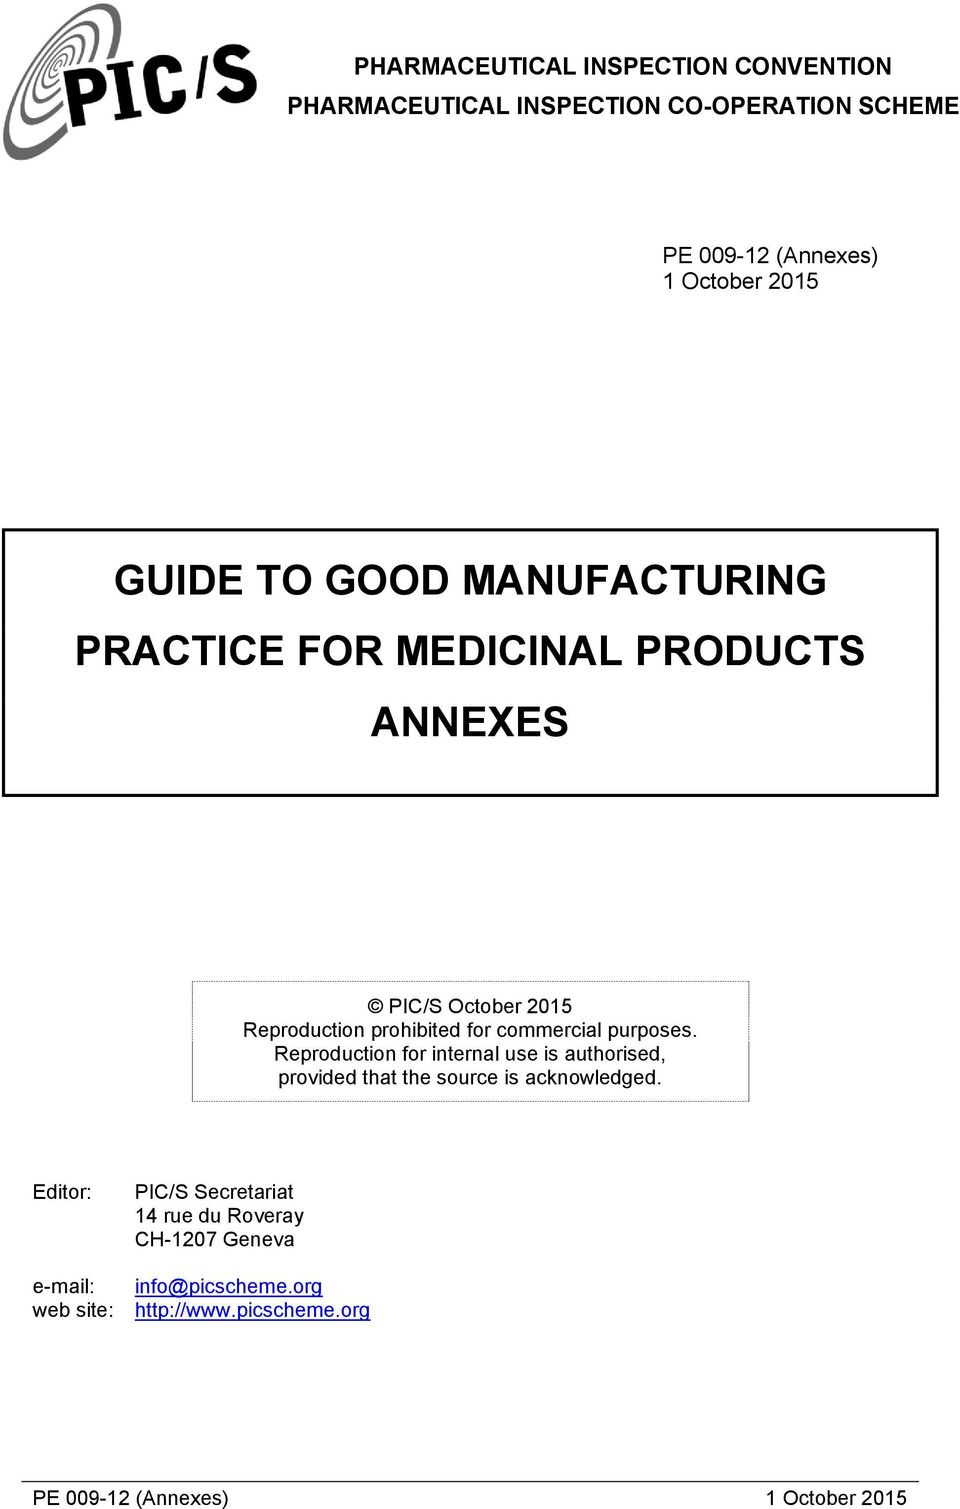 GUIDE TO GOOD MANUFACTURING PRACTICE FOR MEDICINAL